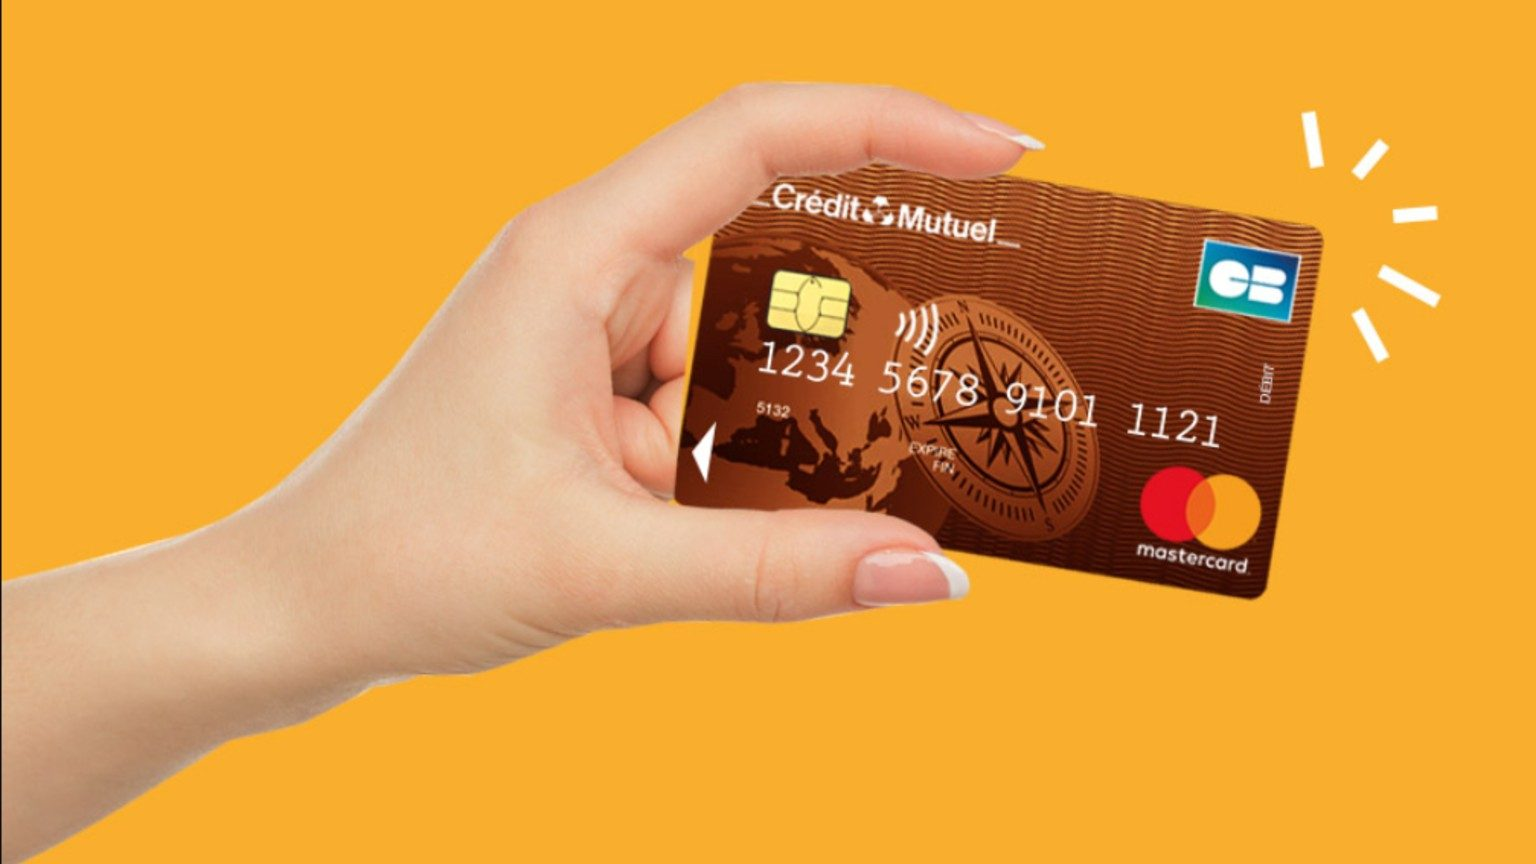 Credit Mutuel Card In Hand